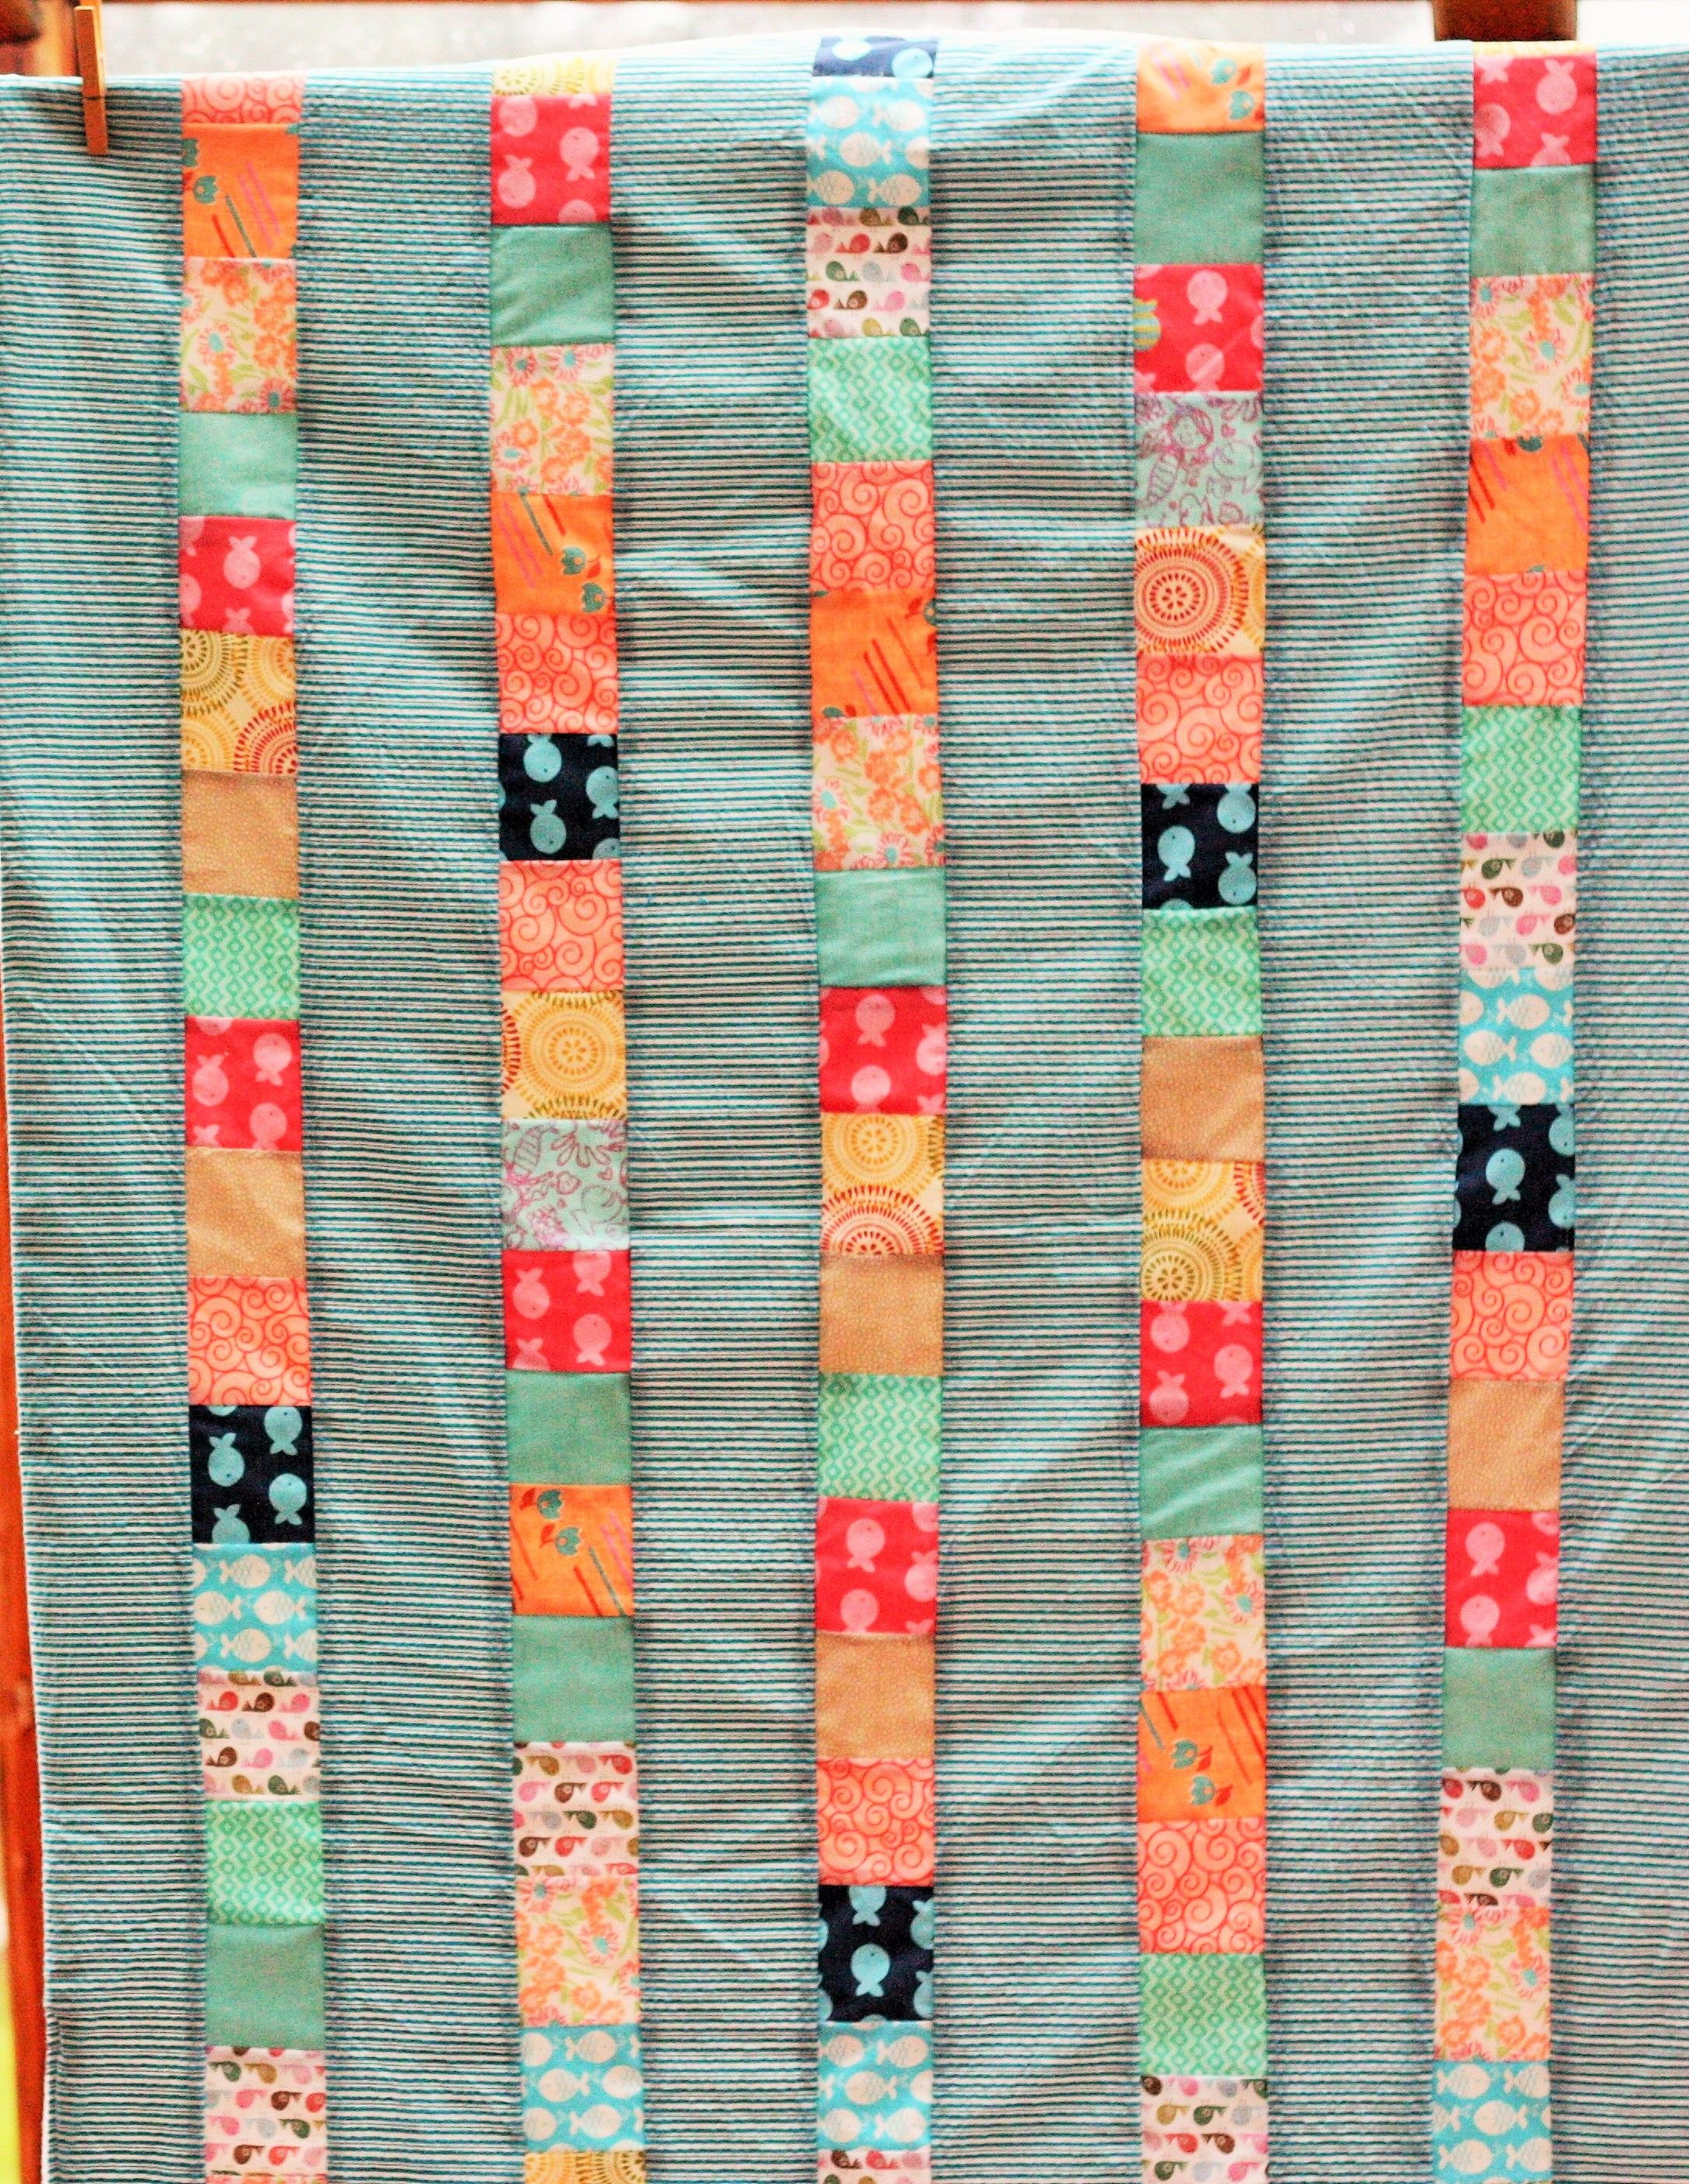 Cheater Quilts - Easy Quilts! Perfect Last Minute Holiday and ... : how to make easy quilt - Adamdwight.com